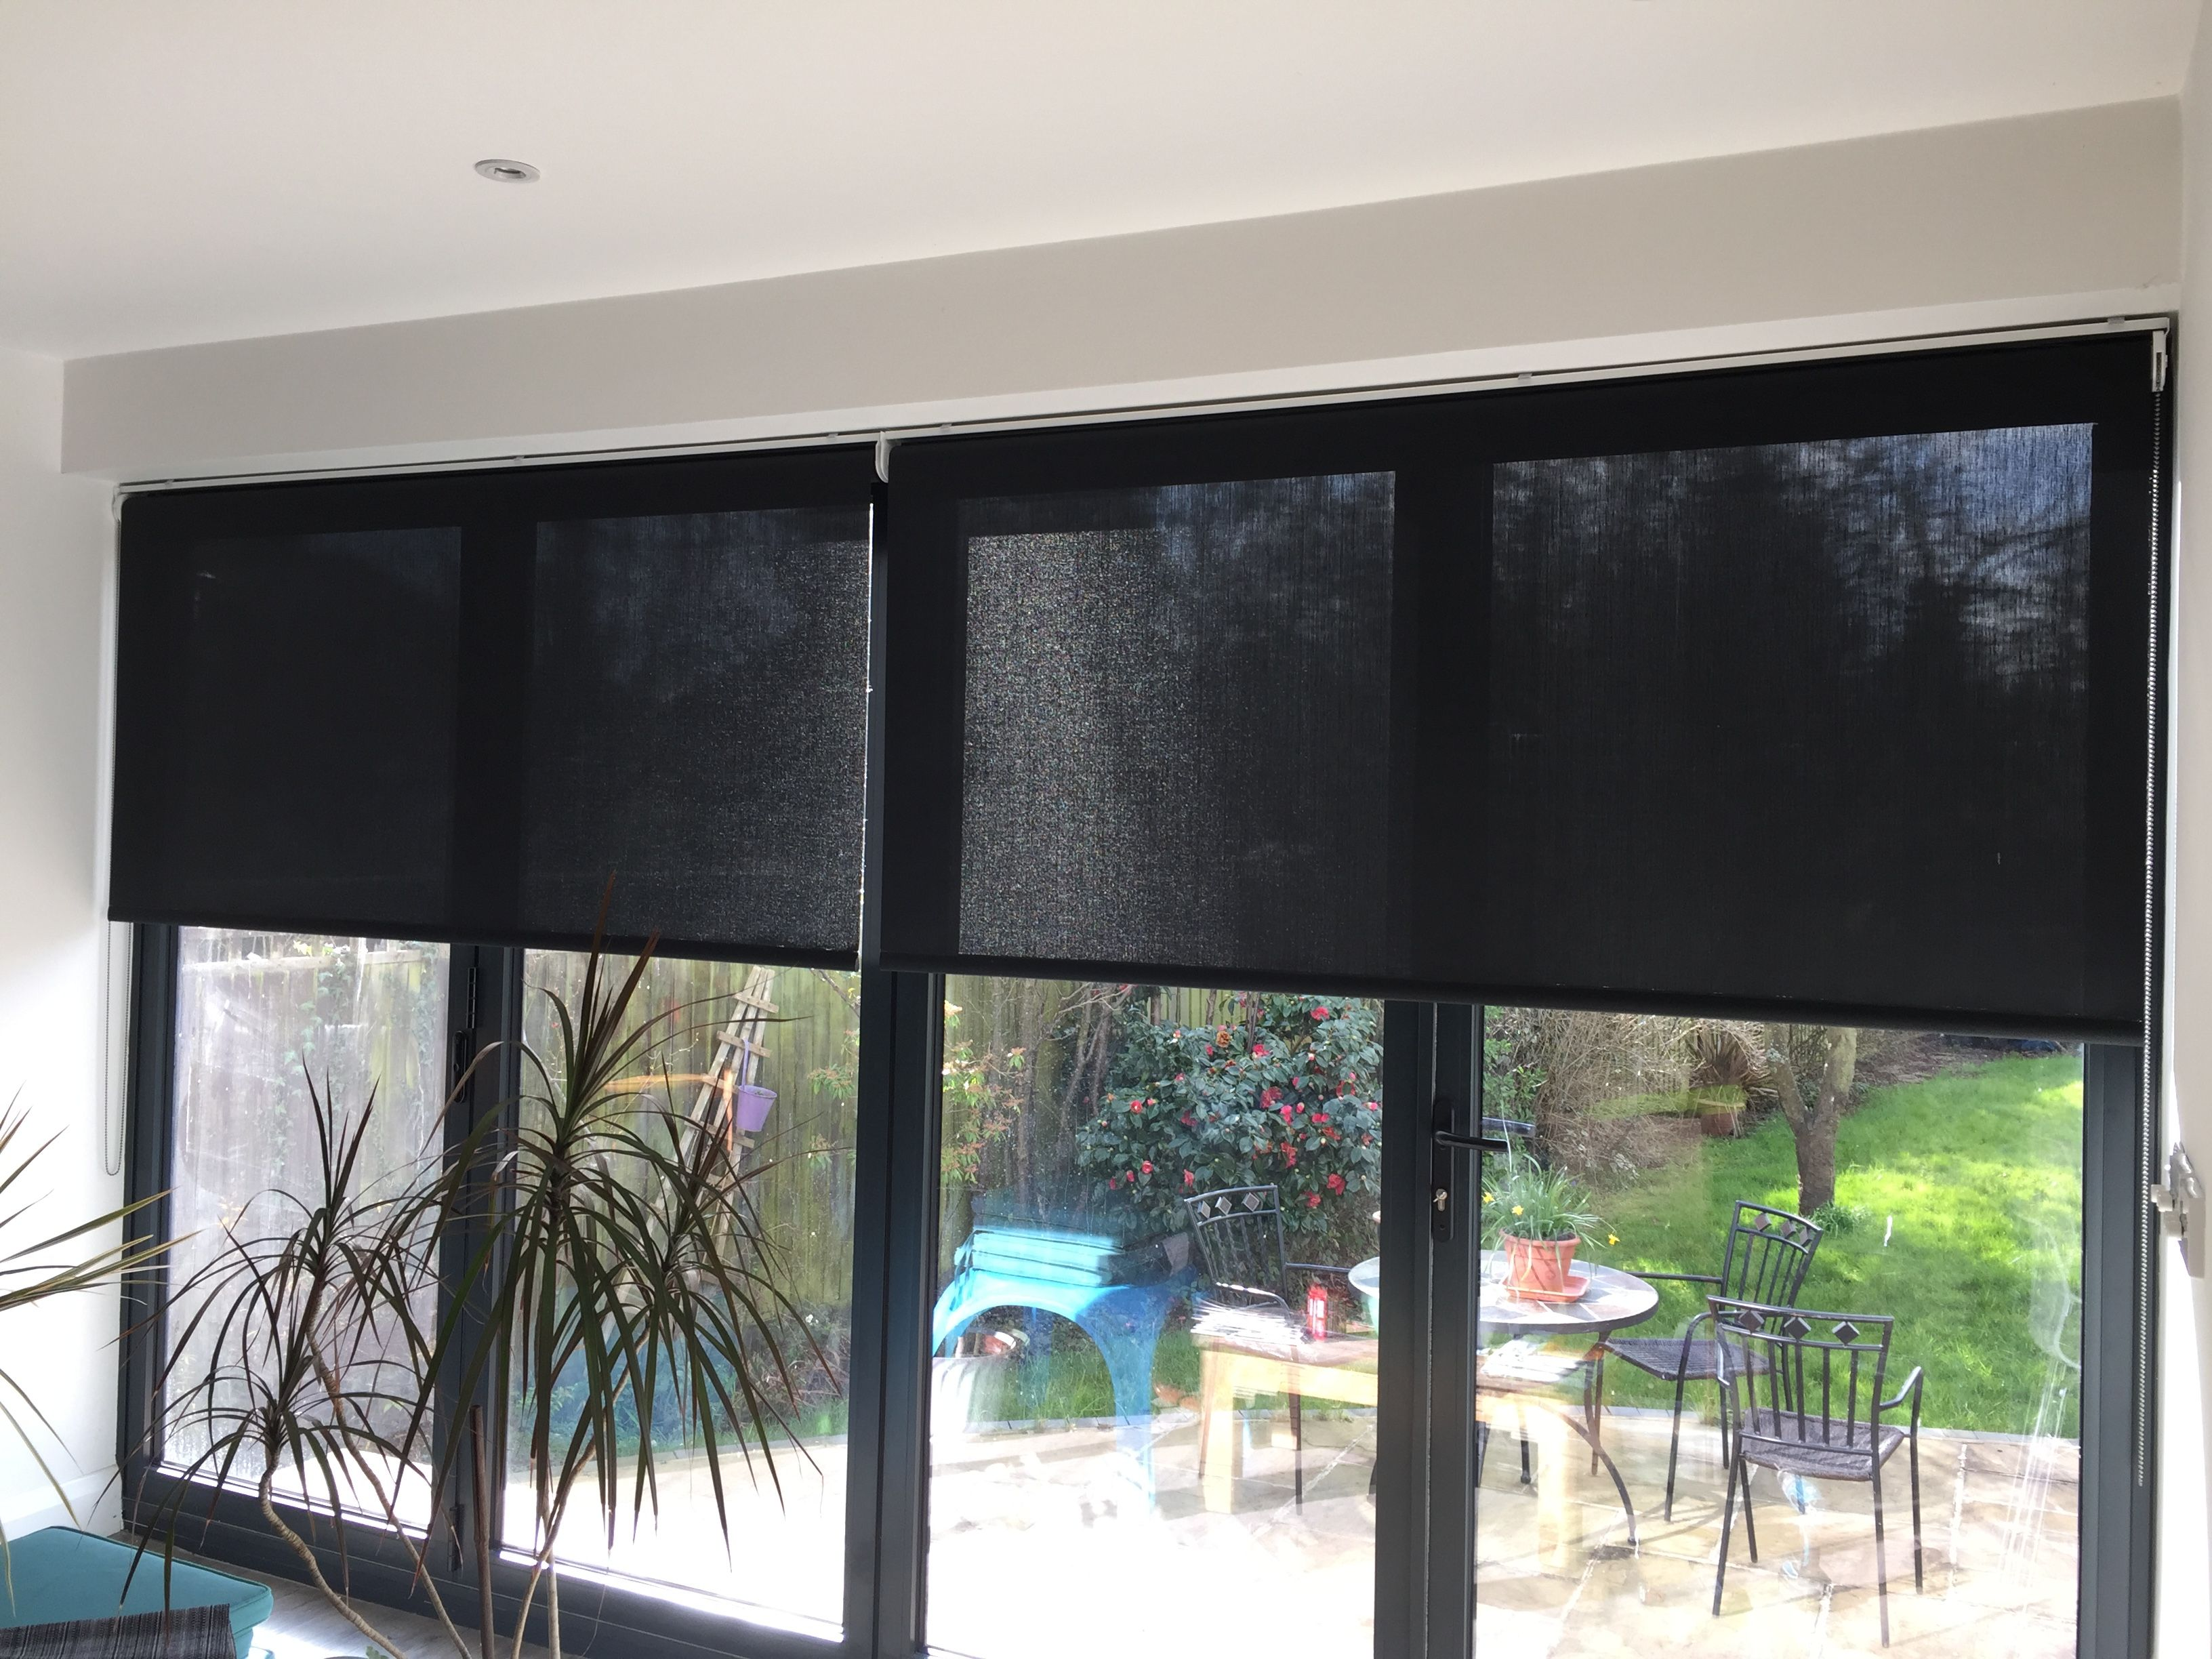 Products rollers in vogue blinds - Roller Blinds In Sunscreen Fabric On Bifold Doors